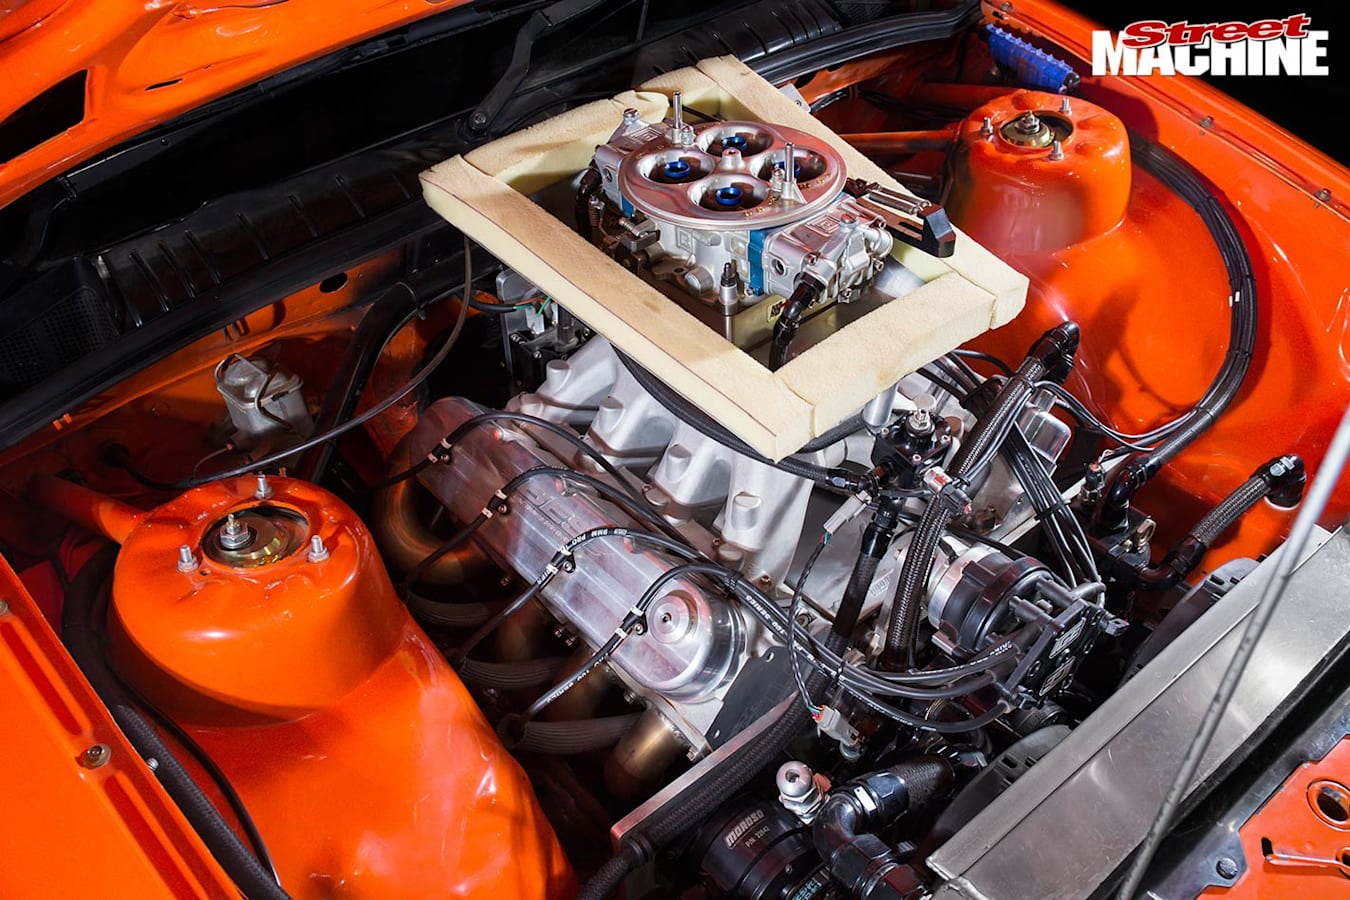 Holden VN Commodore engine bay